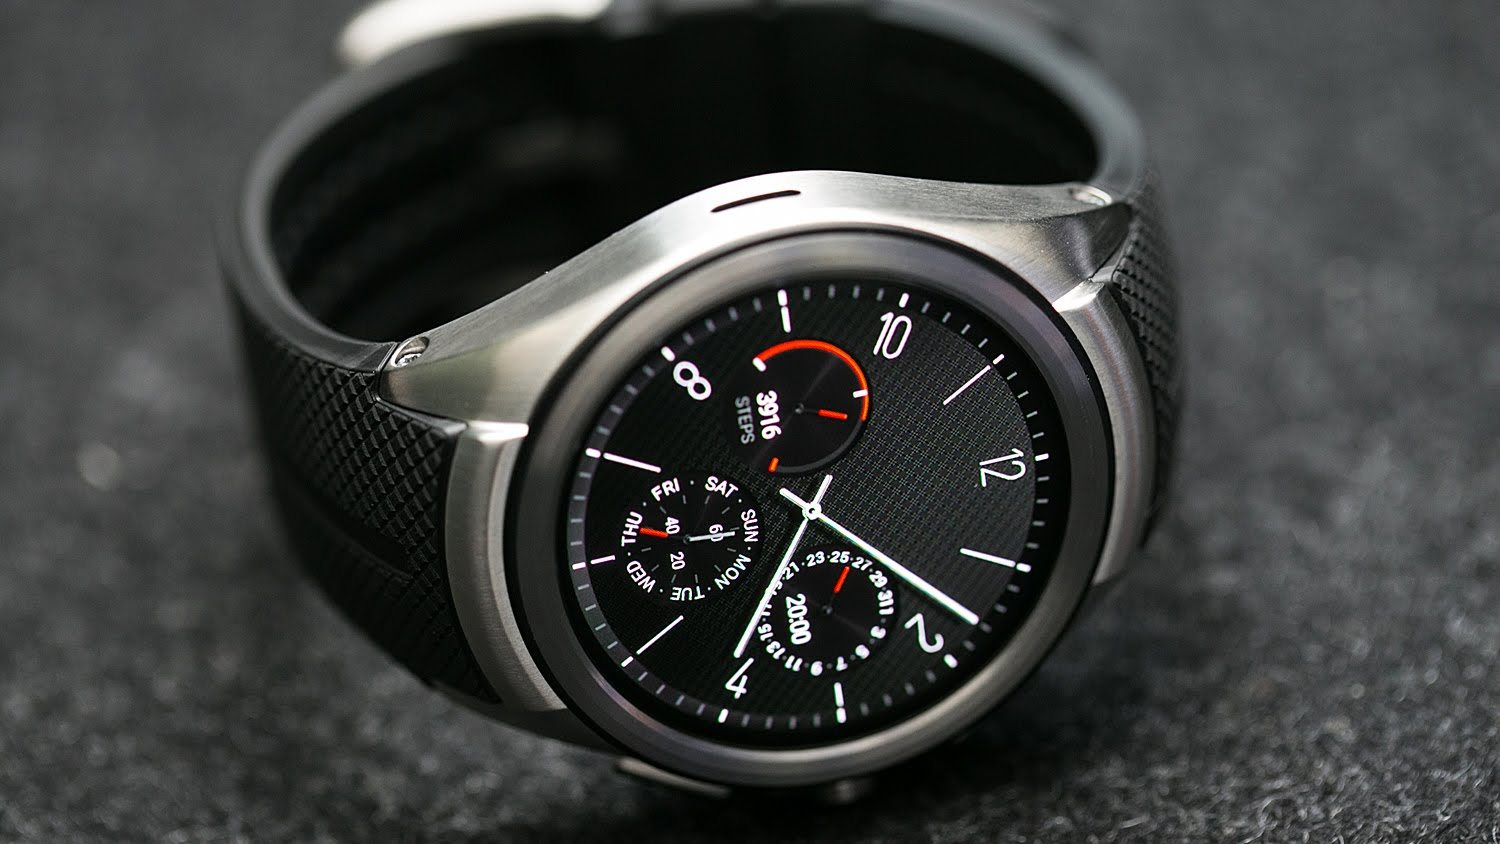 Android LG Smartwatch List: 3 of the Best Wearables of the ...